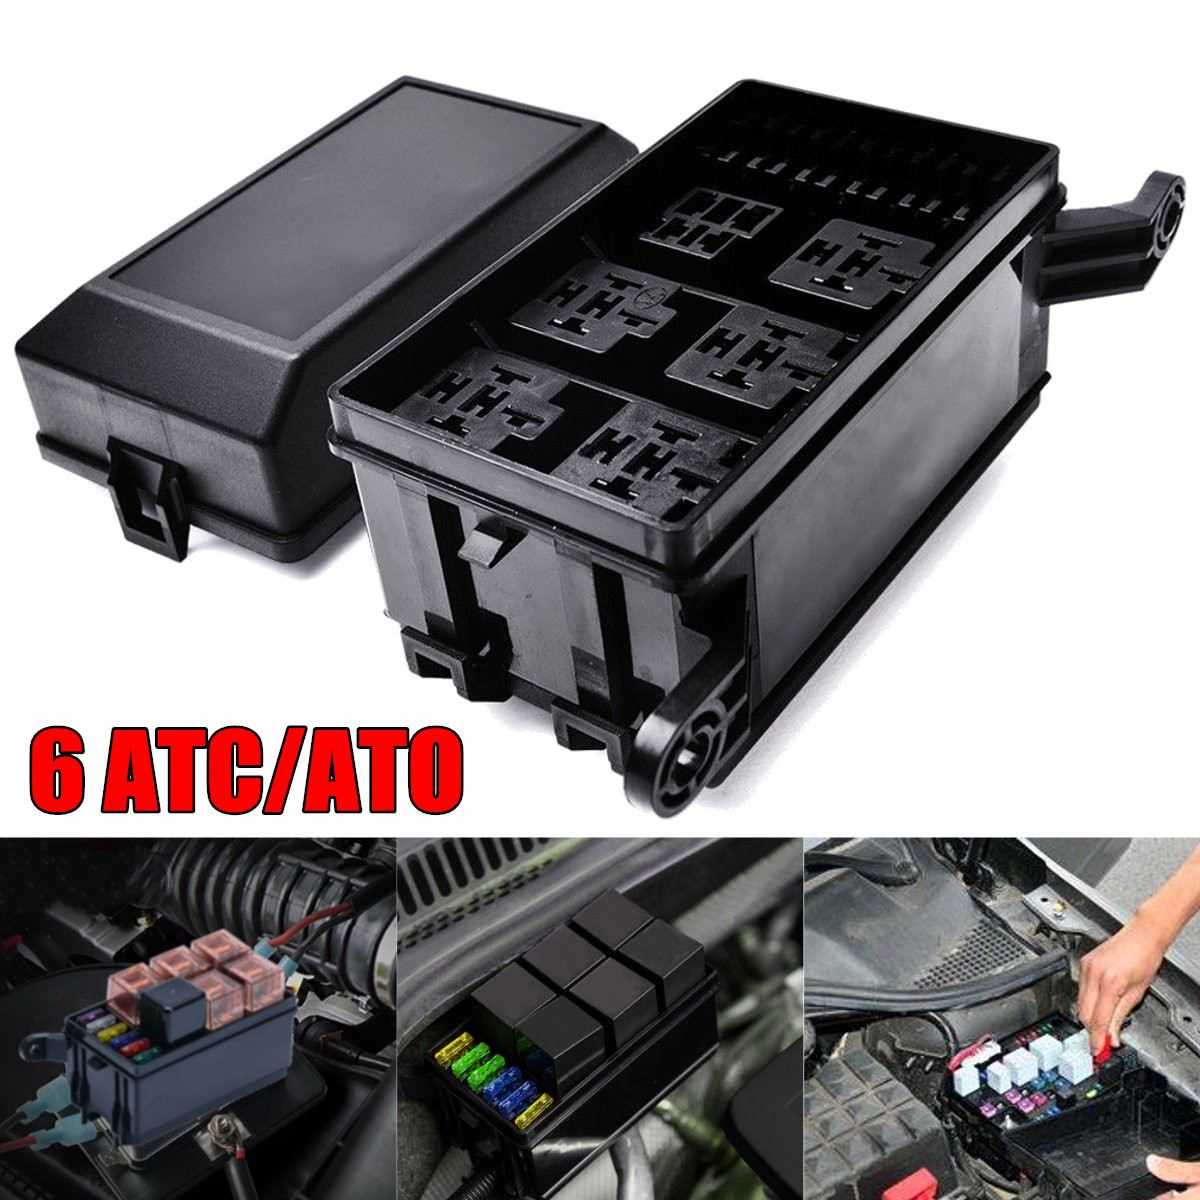 medium resolution of auto car fuse relay holder box relay socket 6 relay 6 atc ato fuses universal in car switches relays from automobiles motorcycles on aliexpress com